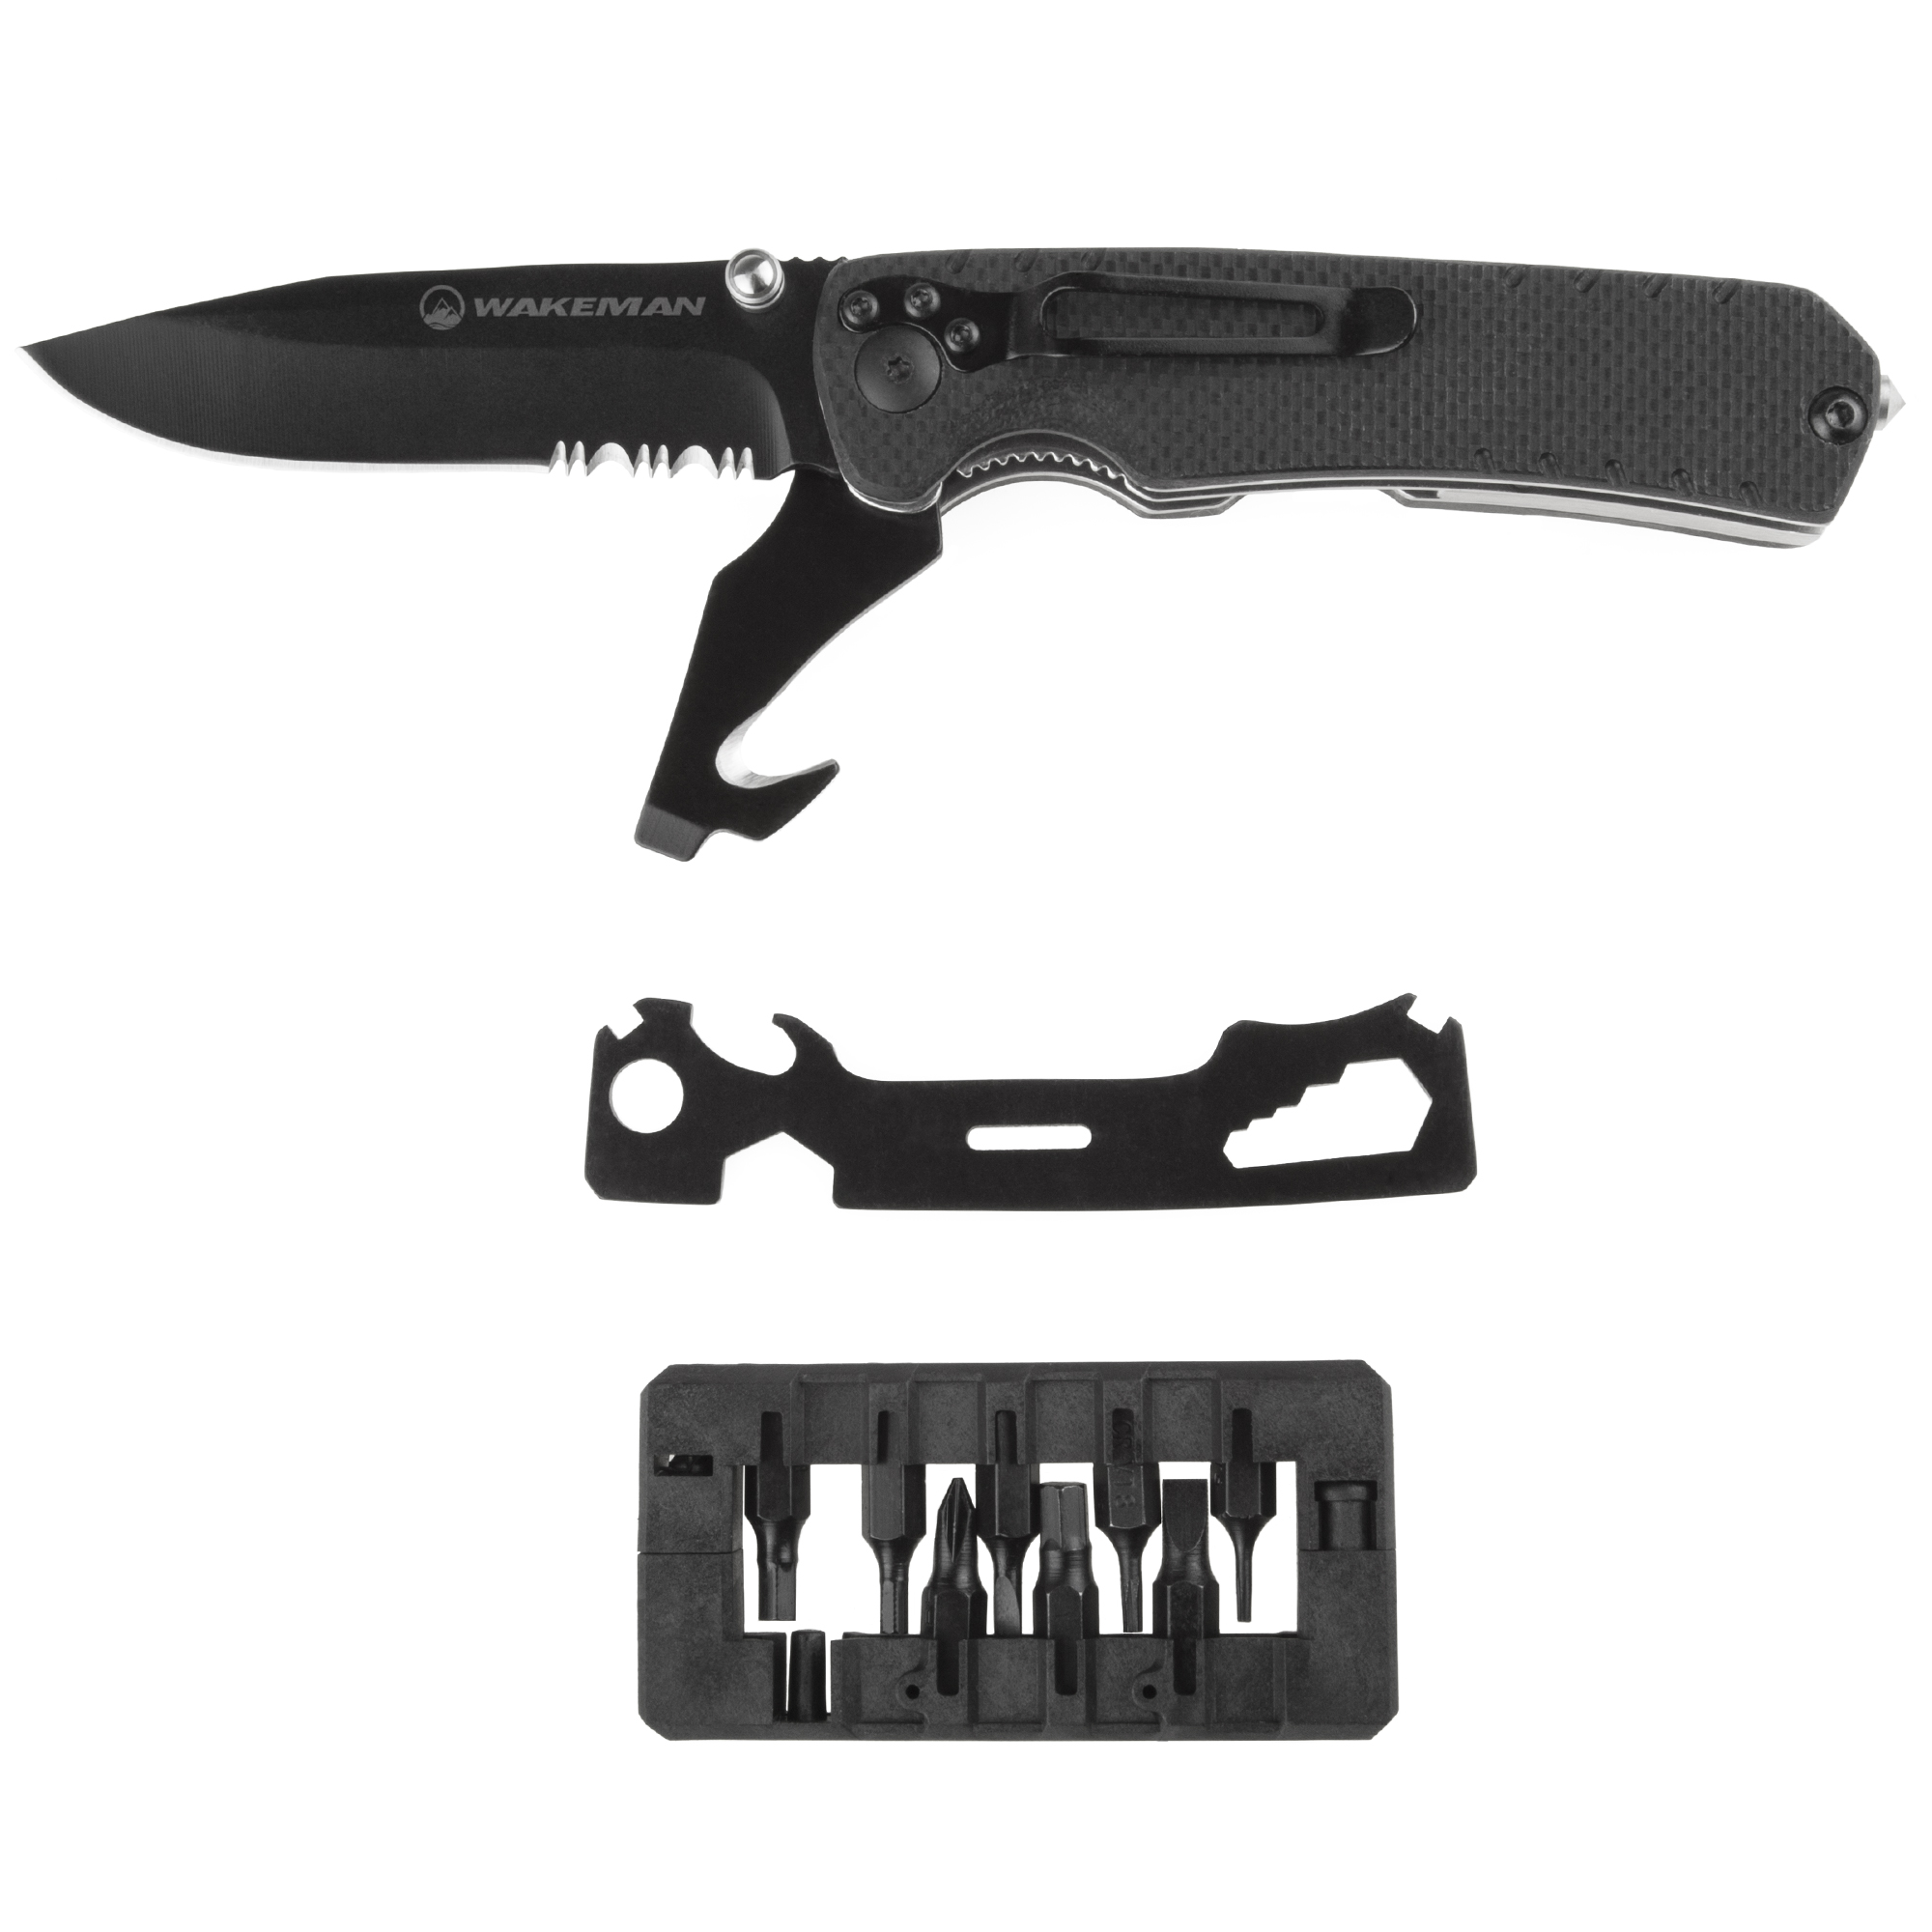 Multitool Folding Pocket Knife, 9-in-1 Multi-Purpose Utility Set Best for Survival, Camping, Hunting and Hiking by Wakeman Outdoors